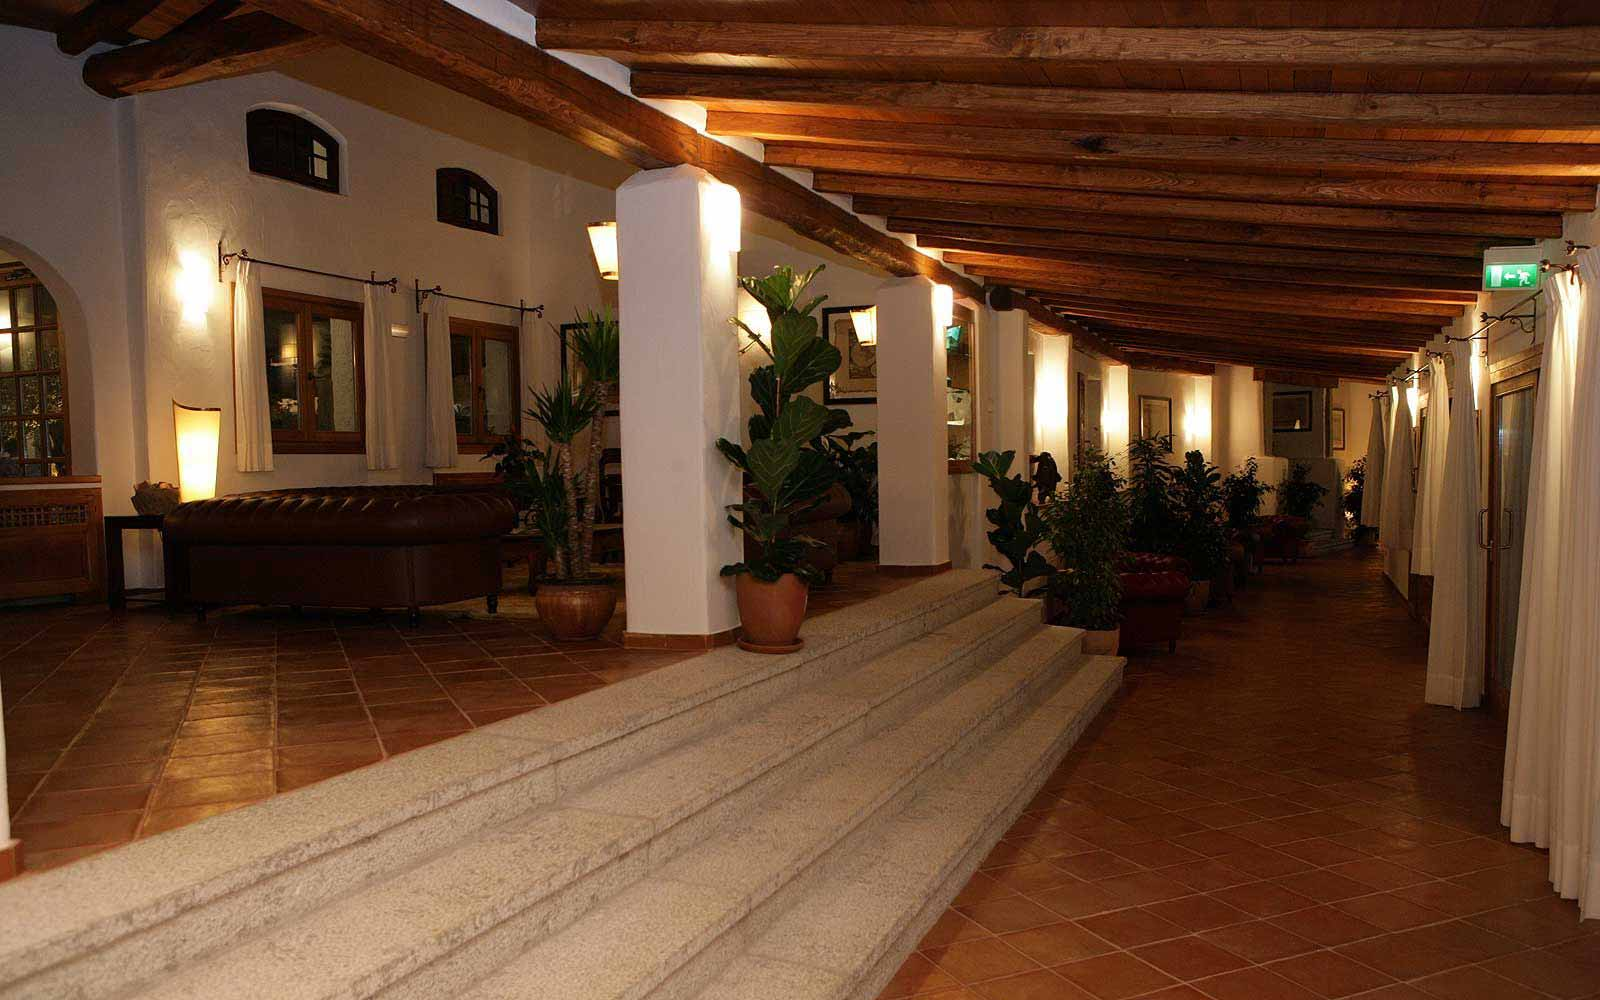 Interior of Hotel Sporting